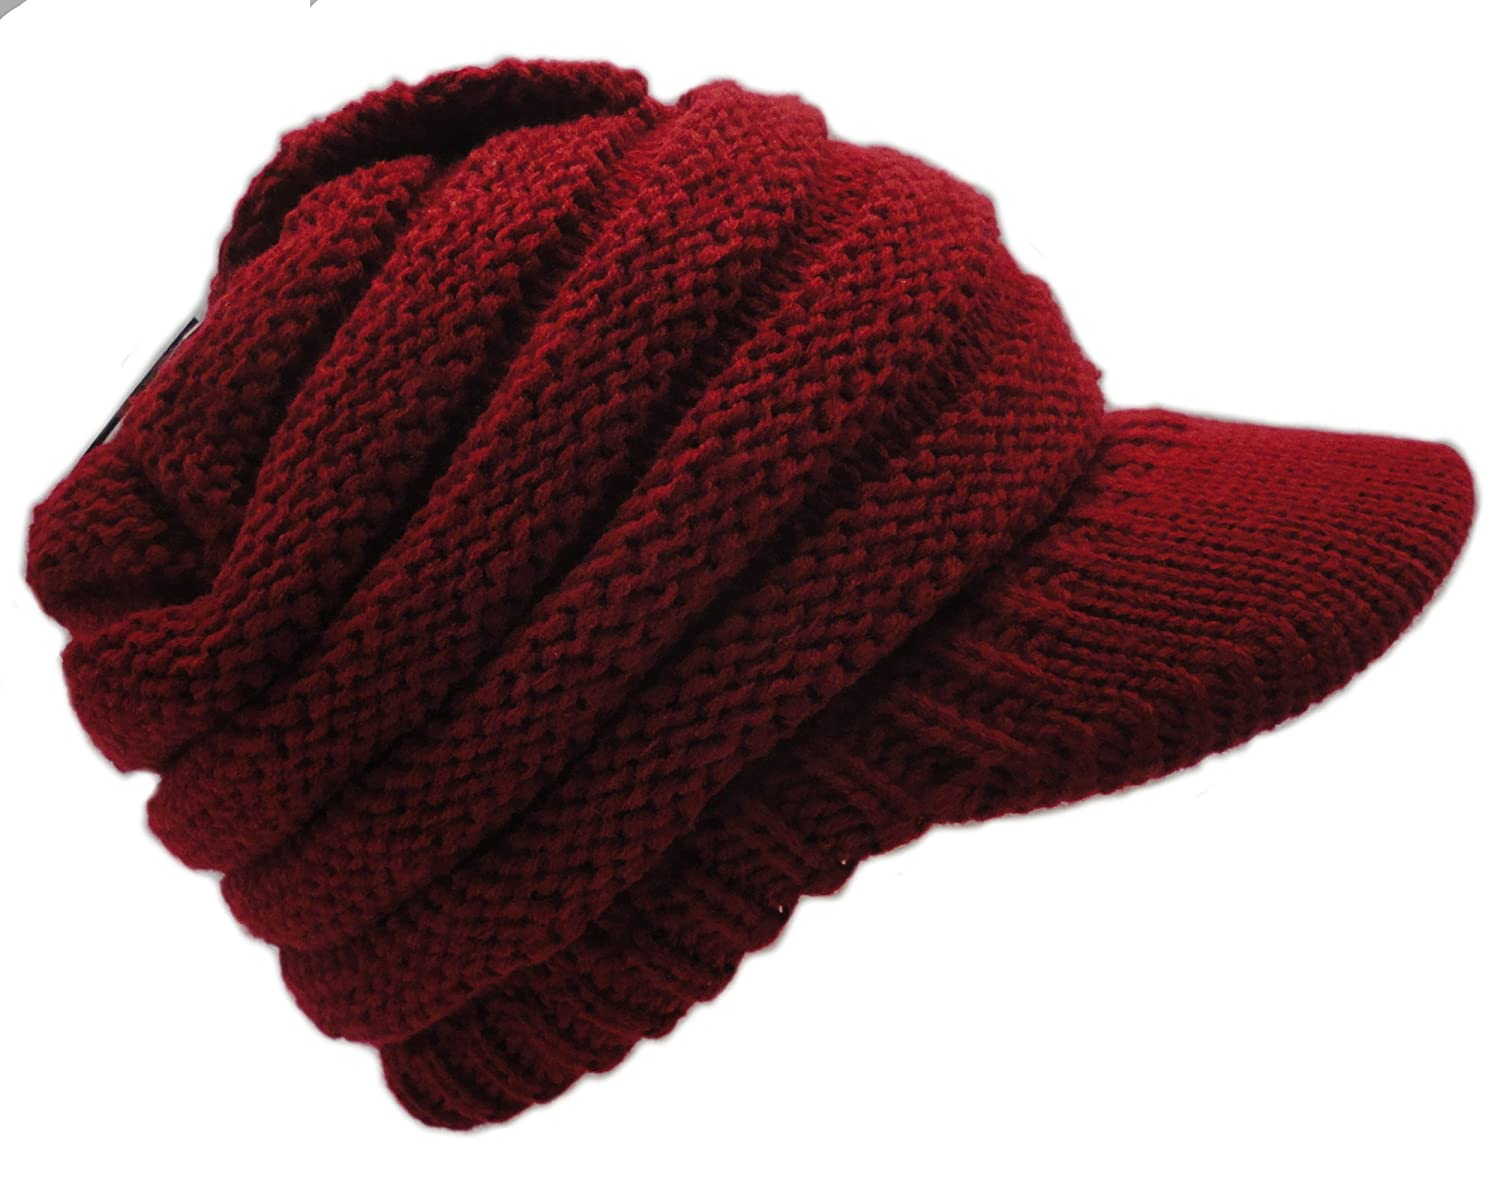 abeb4bc378c ... Newsboy Floral Cable Knitted Hat with Visor Bill Winter Warm Hat for  Women